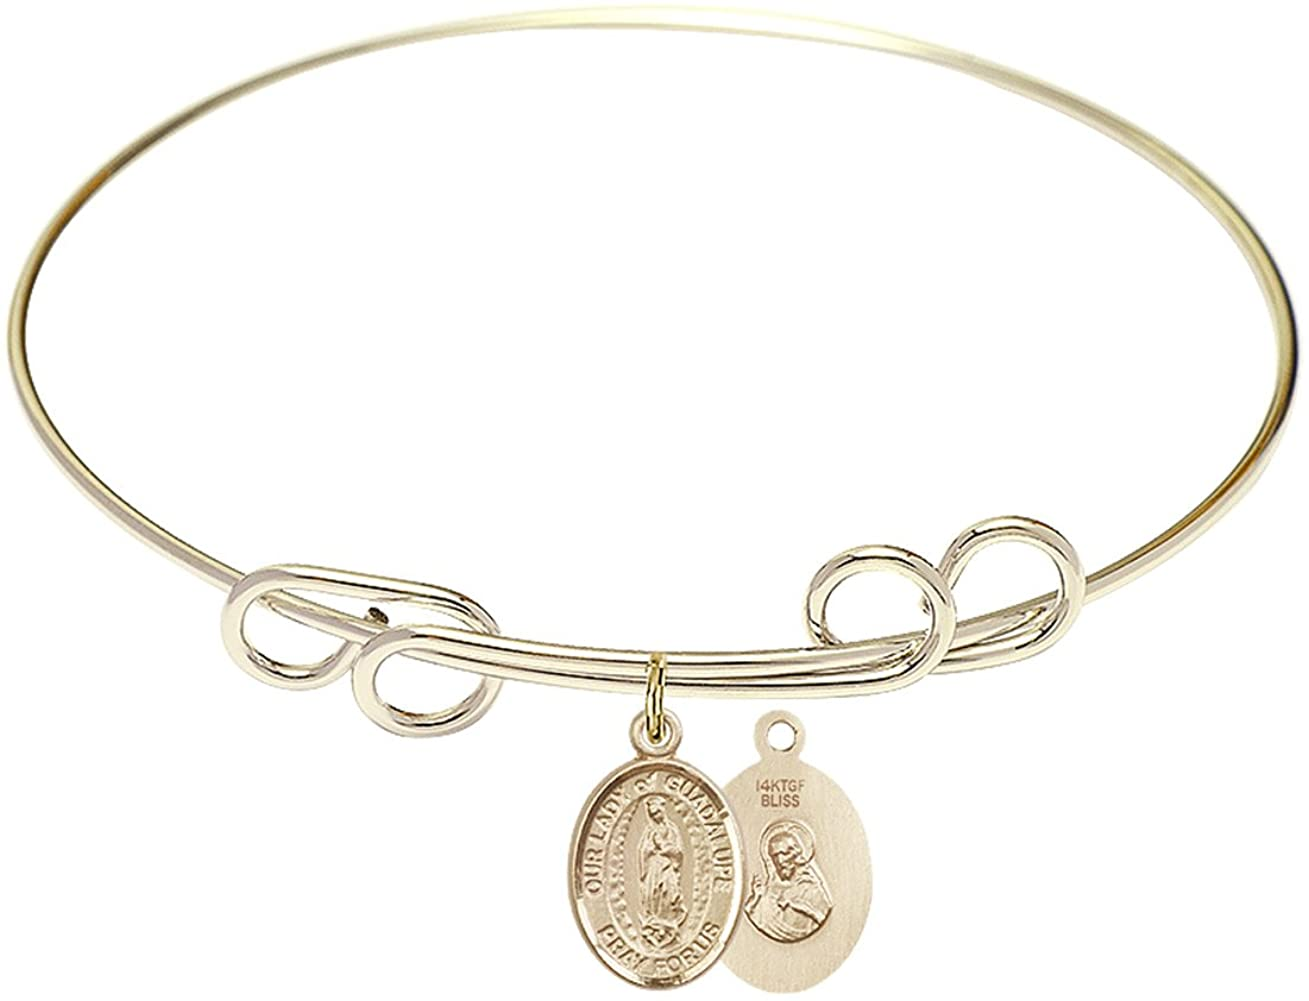 Bonyak Jewelry Round Double Loop Bangle Bracelet w/Our Lady of Guadalupe in Gold-Filled